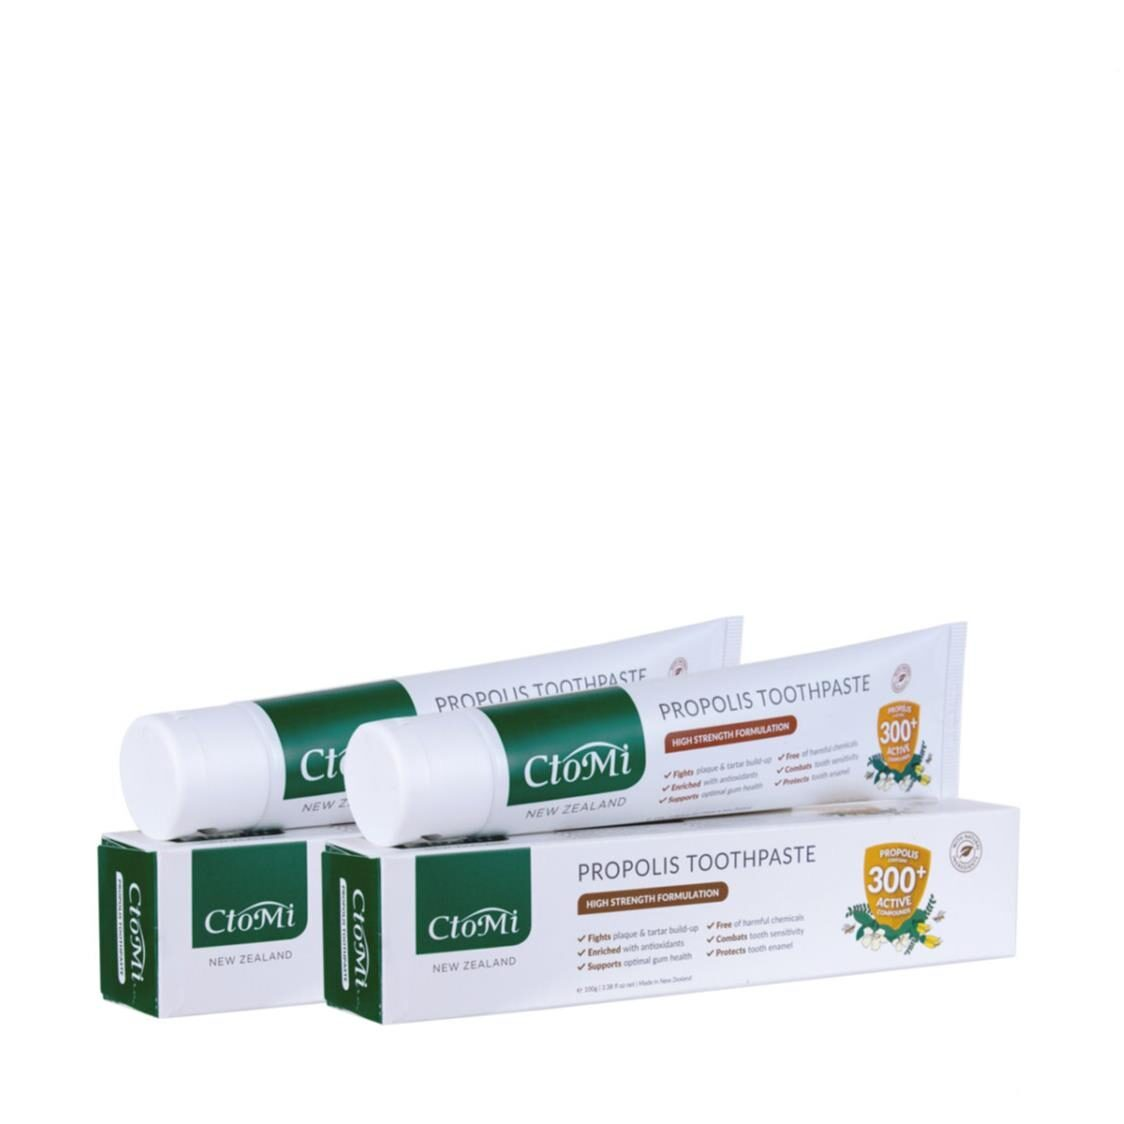 CtoMi Propolis Toothpaste Twin Pack